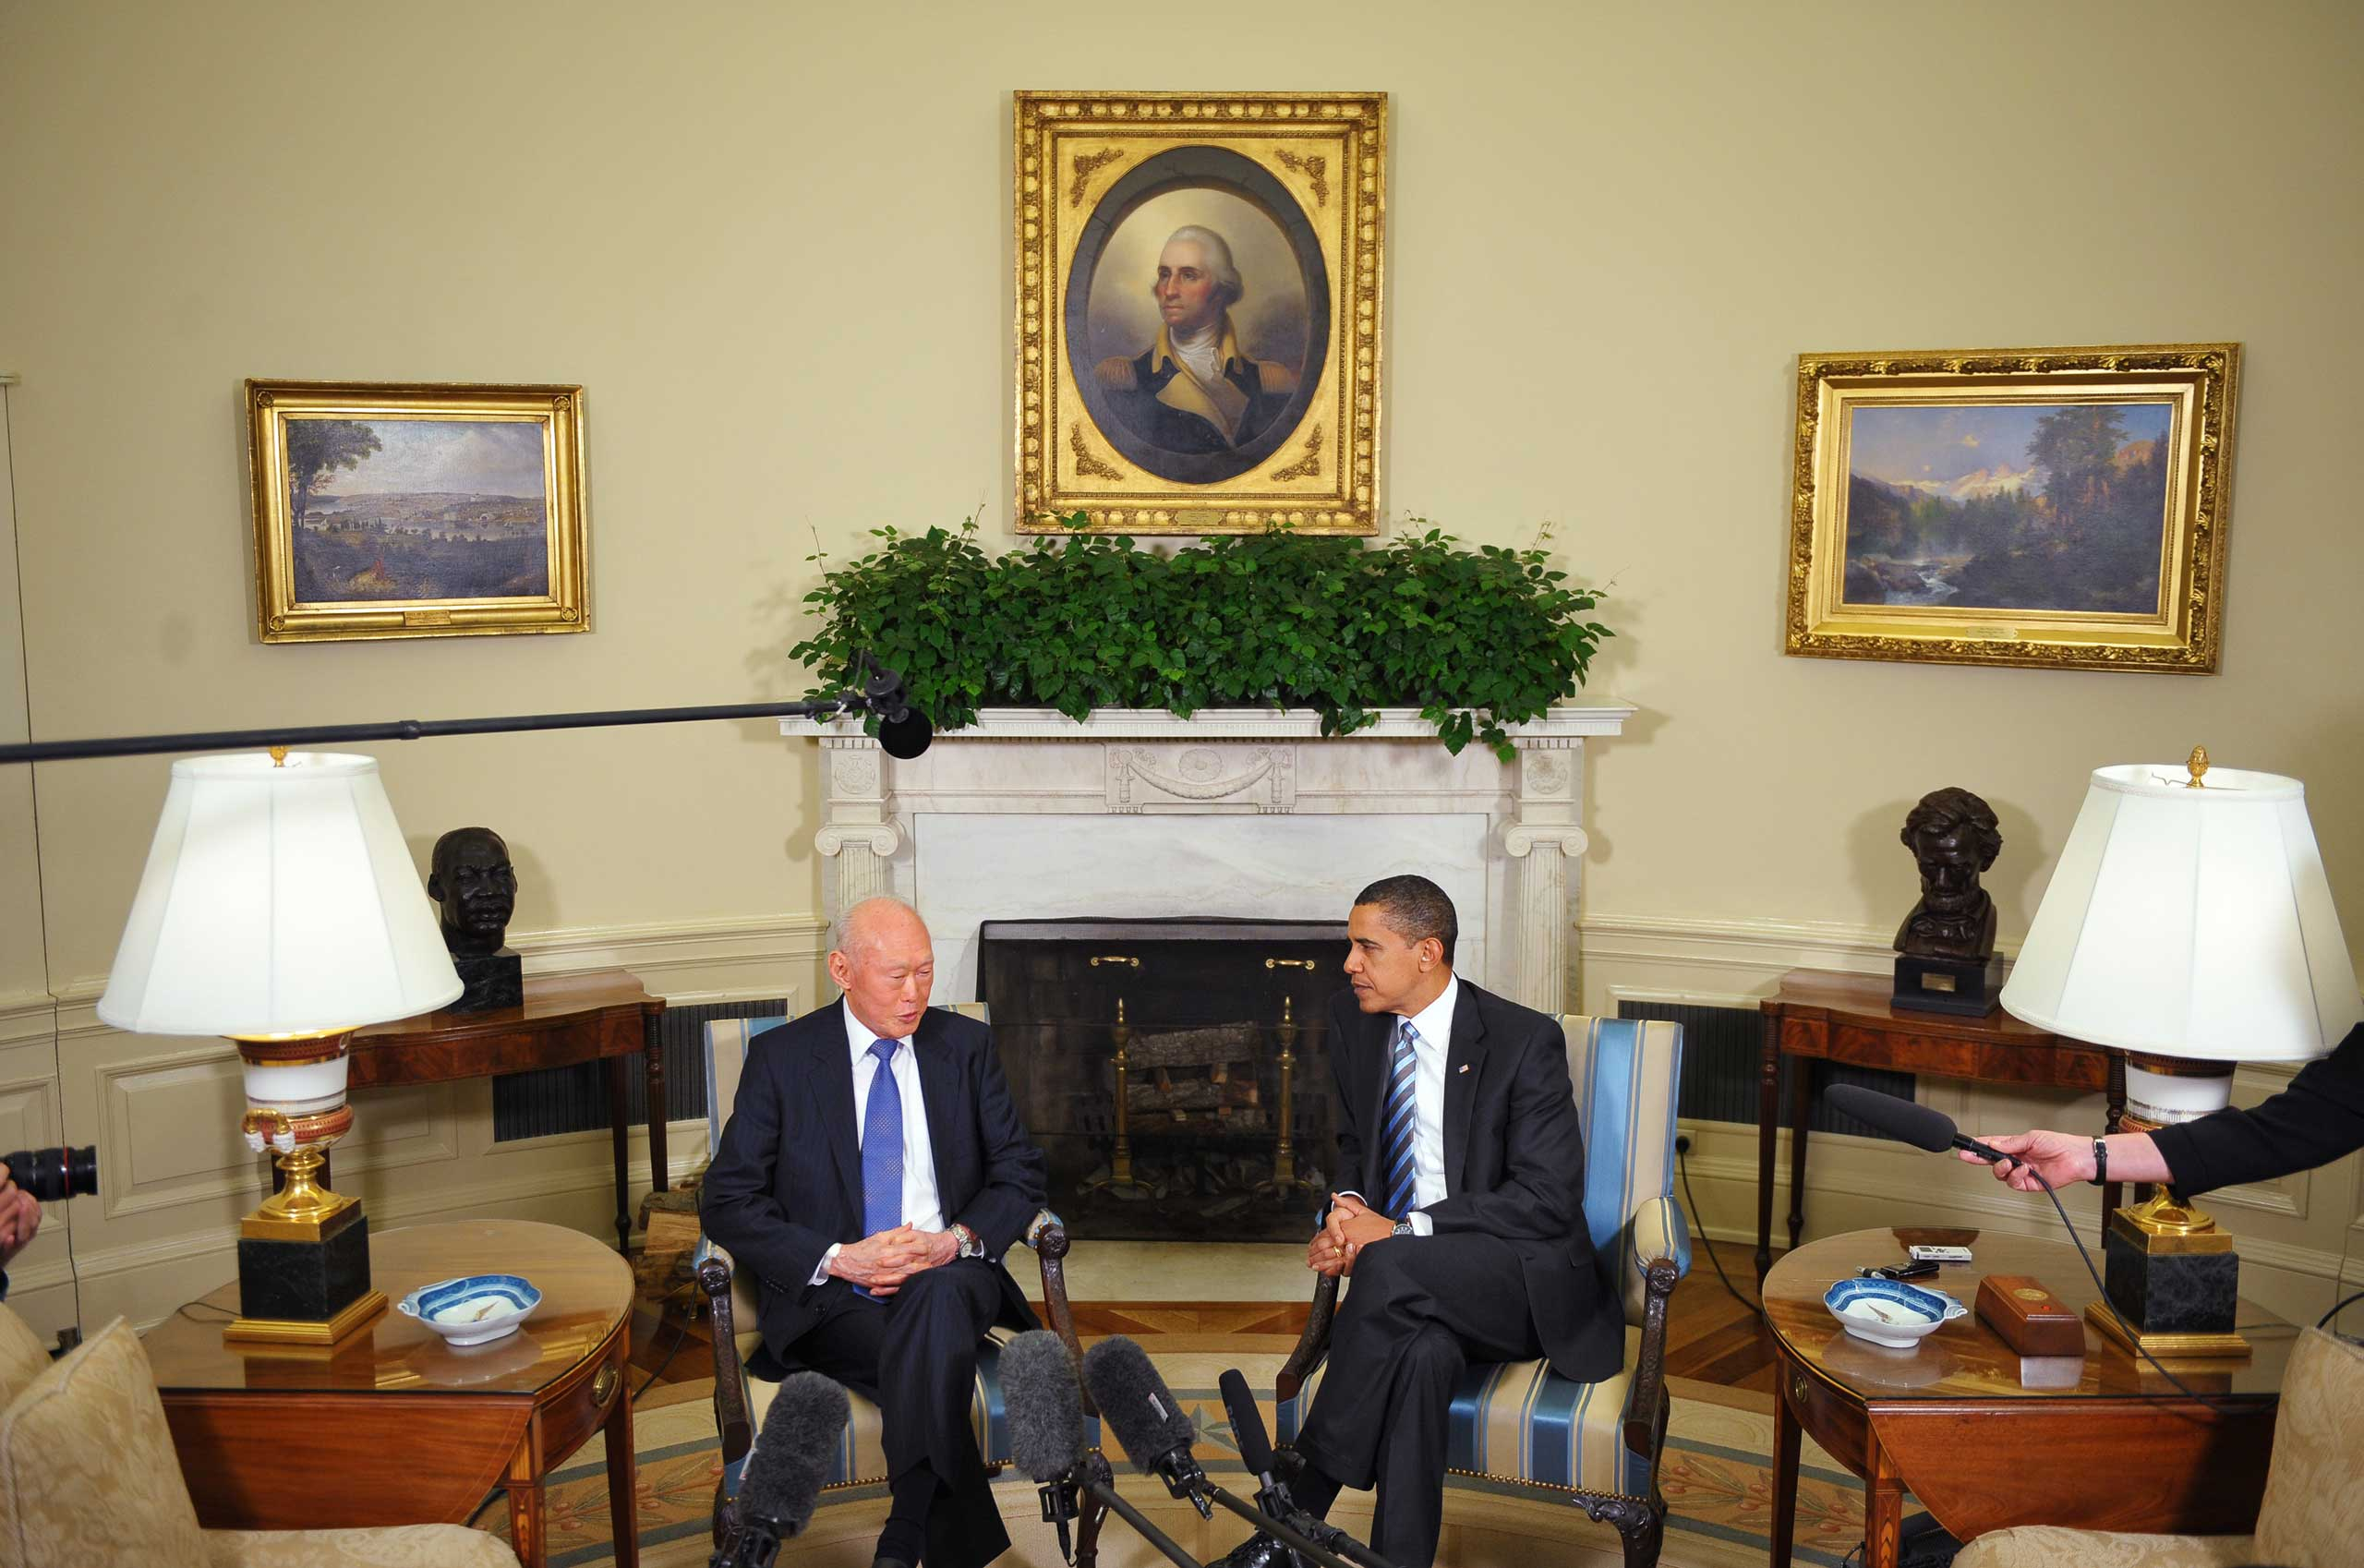 Lee Kuan Yew with President Obama in the Oval Office in 2009.